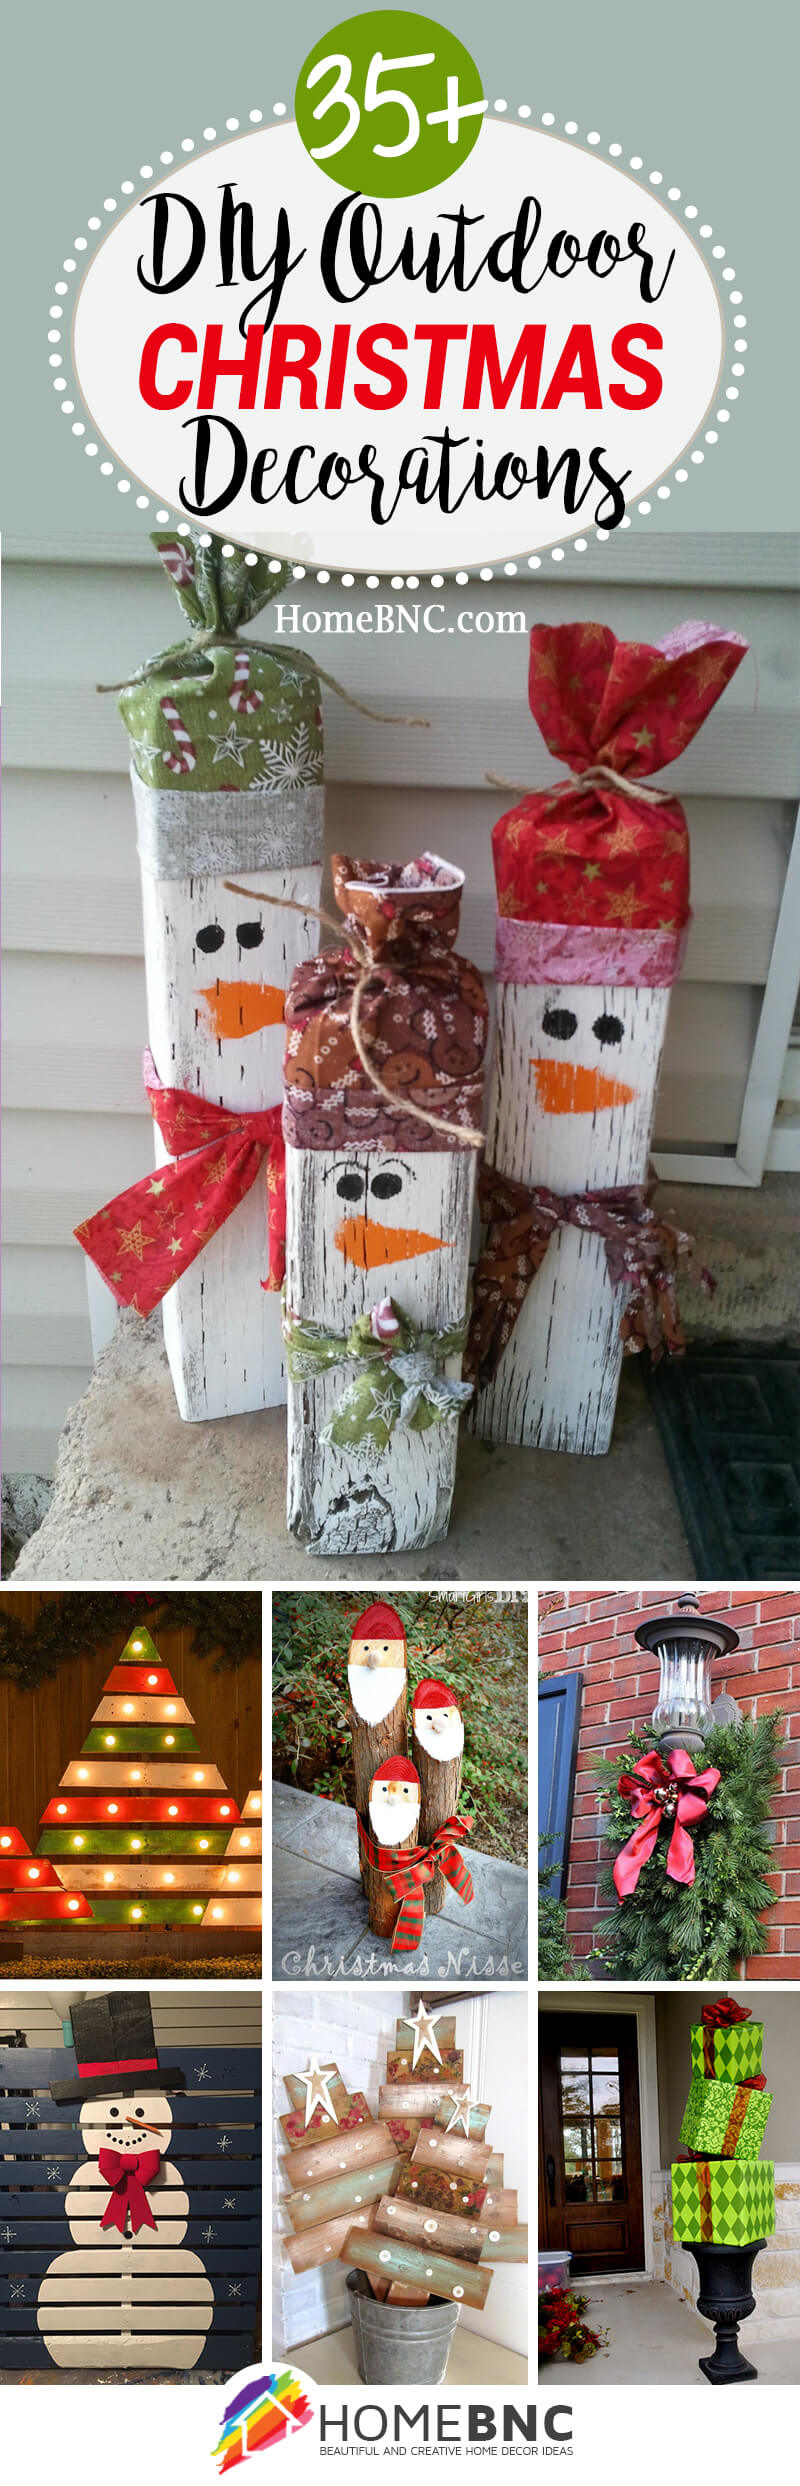 35 Best Christmas DIY Outdoor Decor Ideas and Designs for